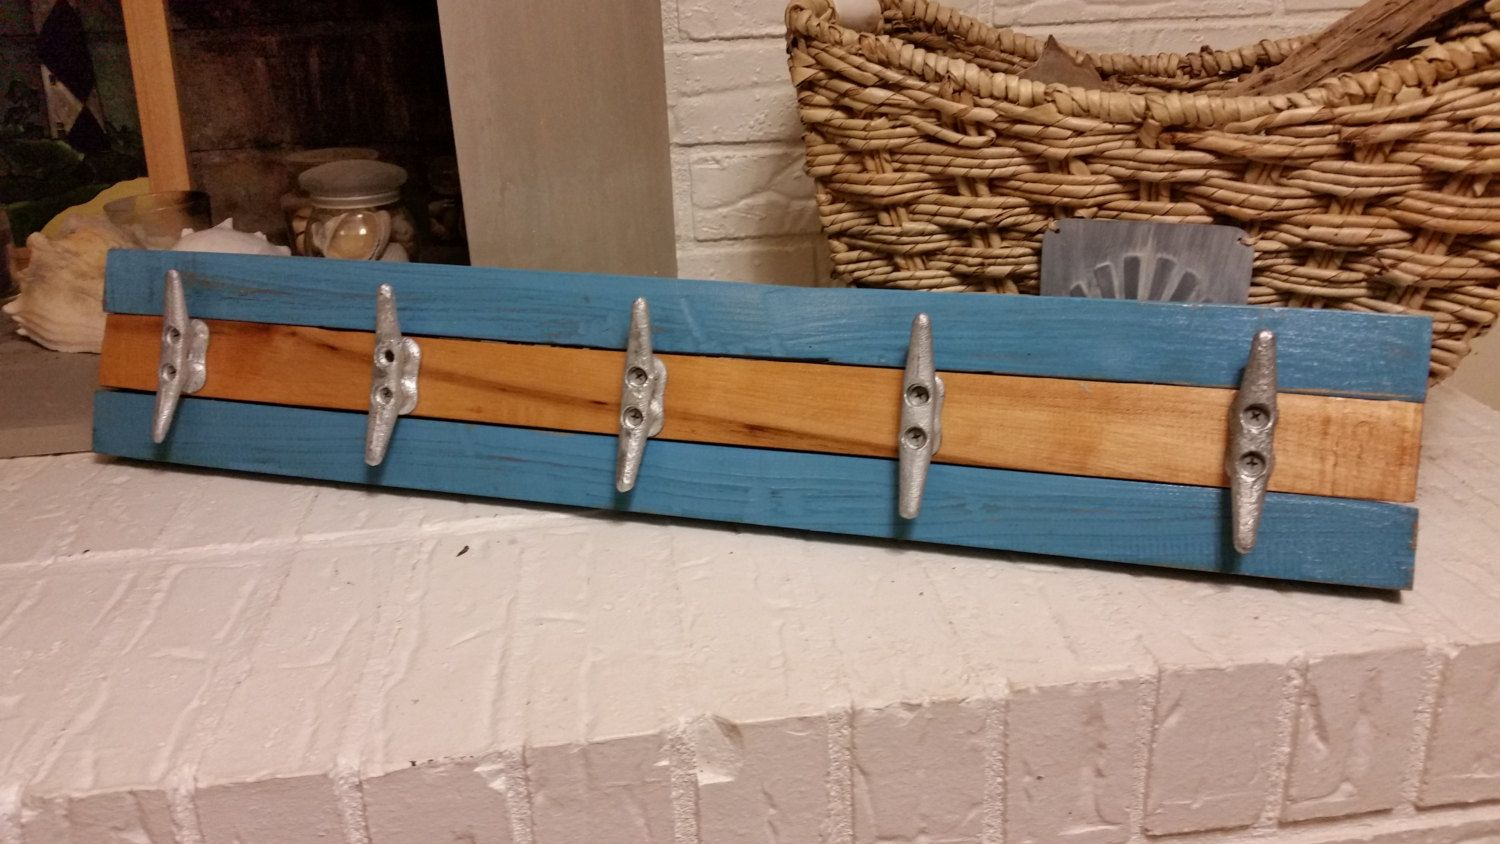 30 Boat Cleat Coat Rack Or Towel Rack With Galvanized Iron Nautical Cleats And Reclaimed Wood Blue By Williswooddesigns Deck Decorating Wood Galvanized Iron